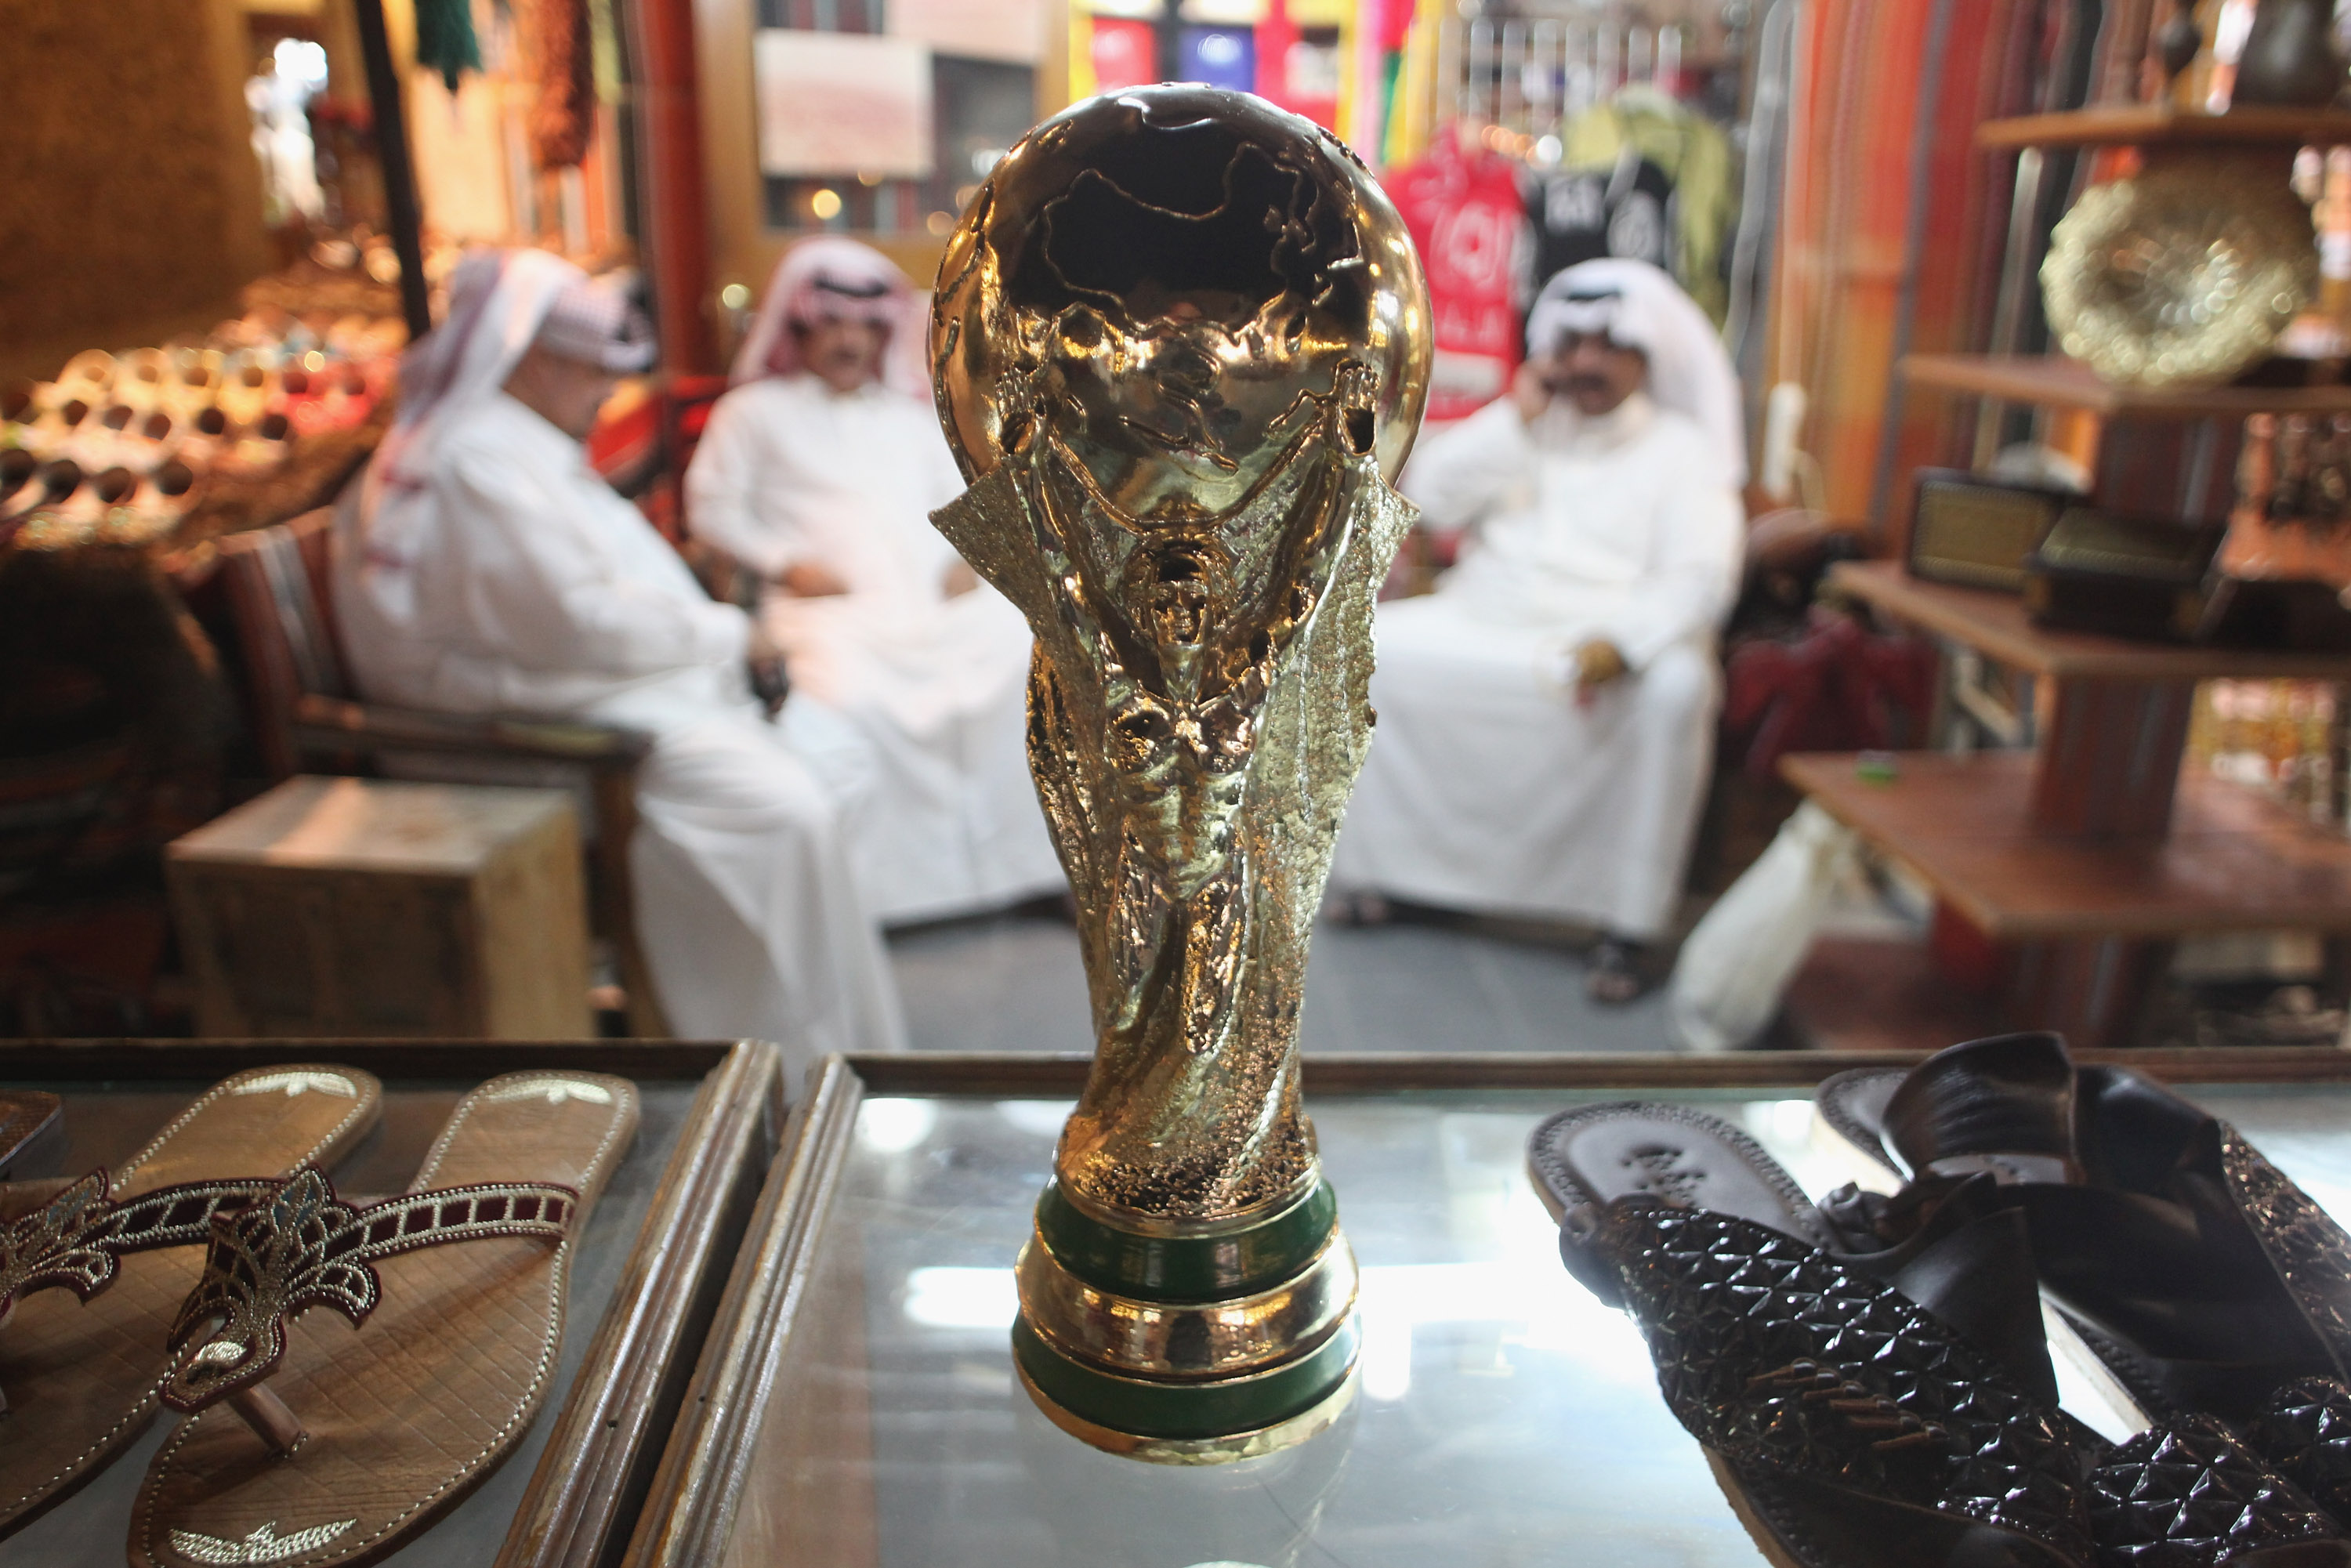 Fifa thinks the 2022 World Cup should be played in air-conditioned stadiums in Qatar, where  the average temperature in June is over 100 degrees.